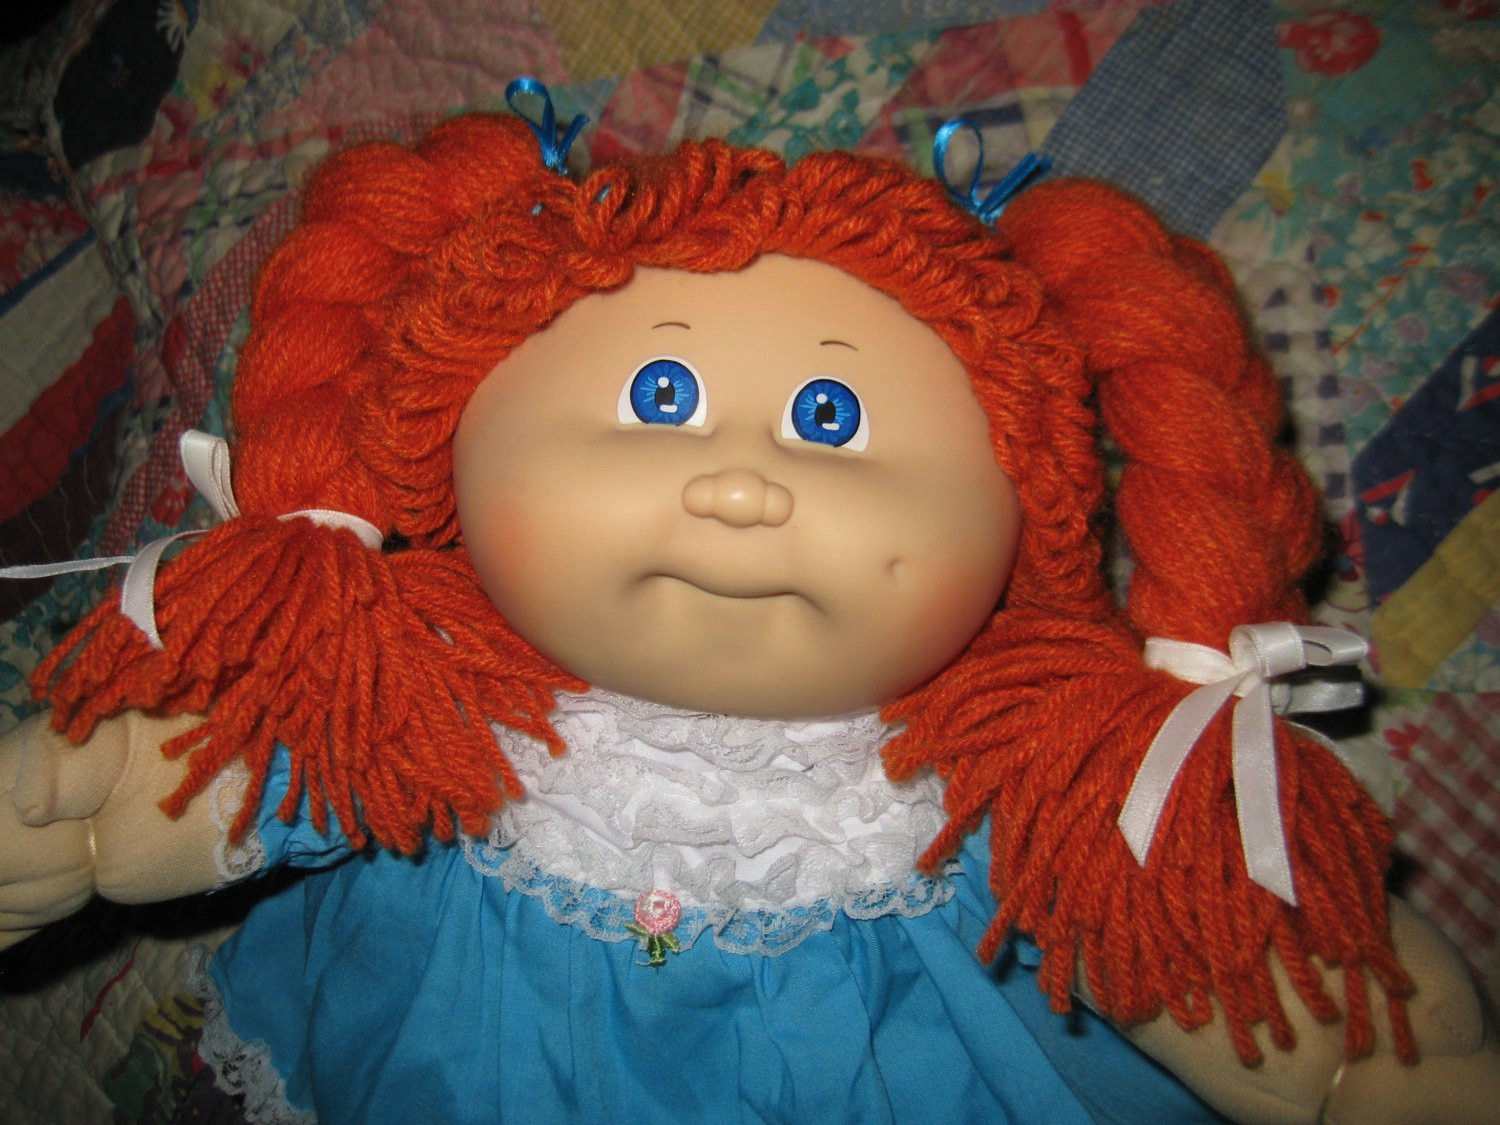 Best Of Vintage Cabbage Patch Kid Doll Ginger Red Hair Girl Baby Cabbage Patch Doll Of Great 47 Photos Baby Cabbage Patch Doll